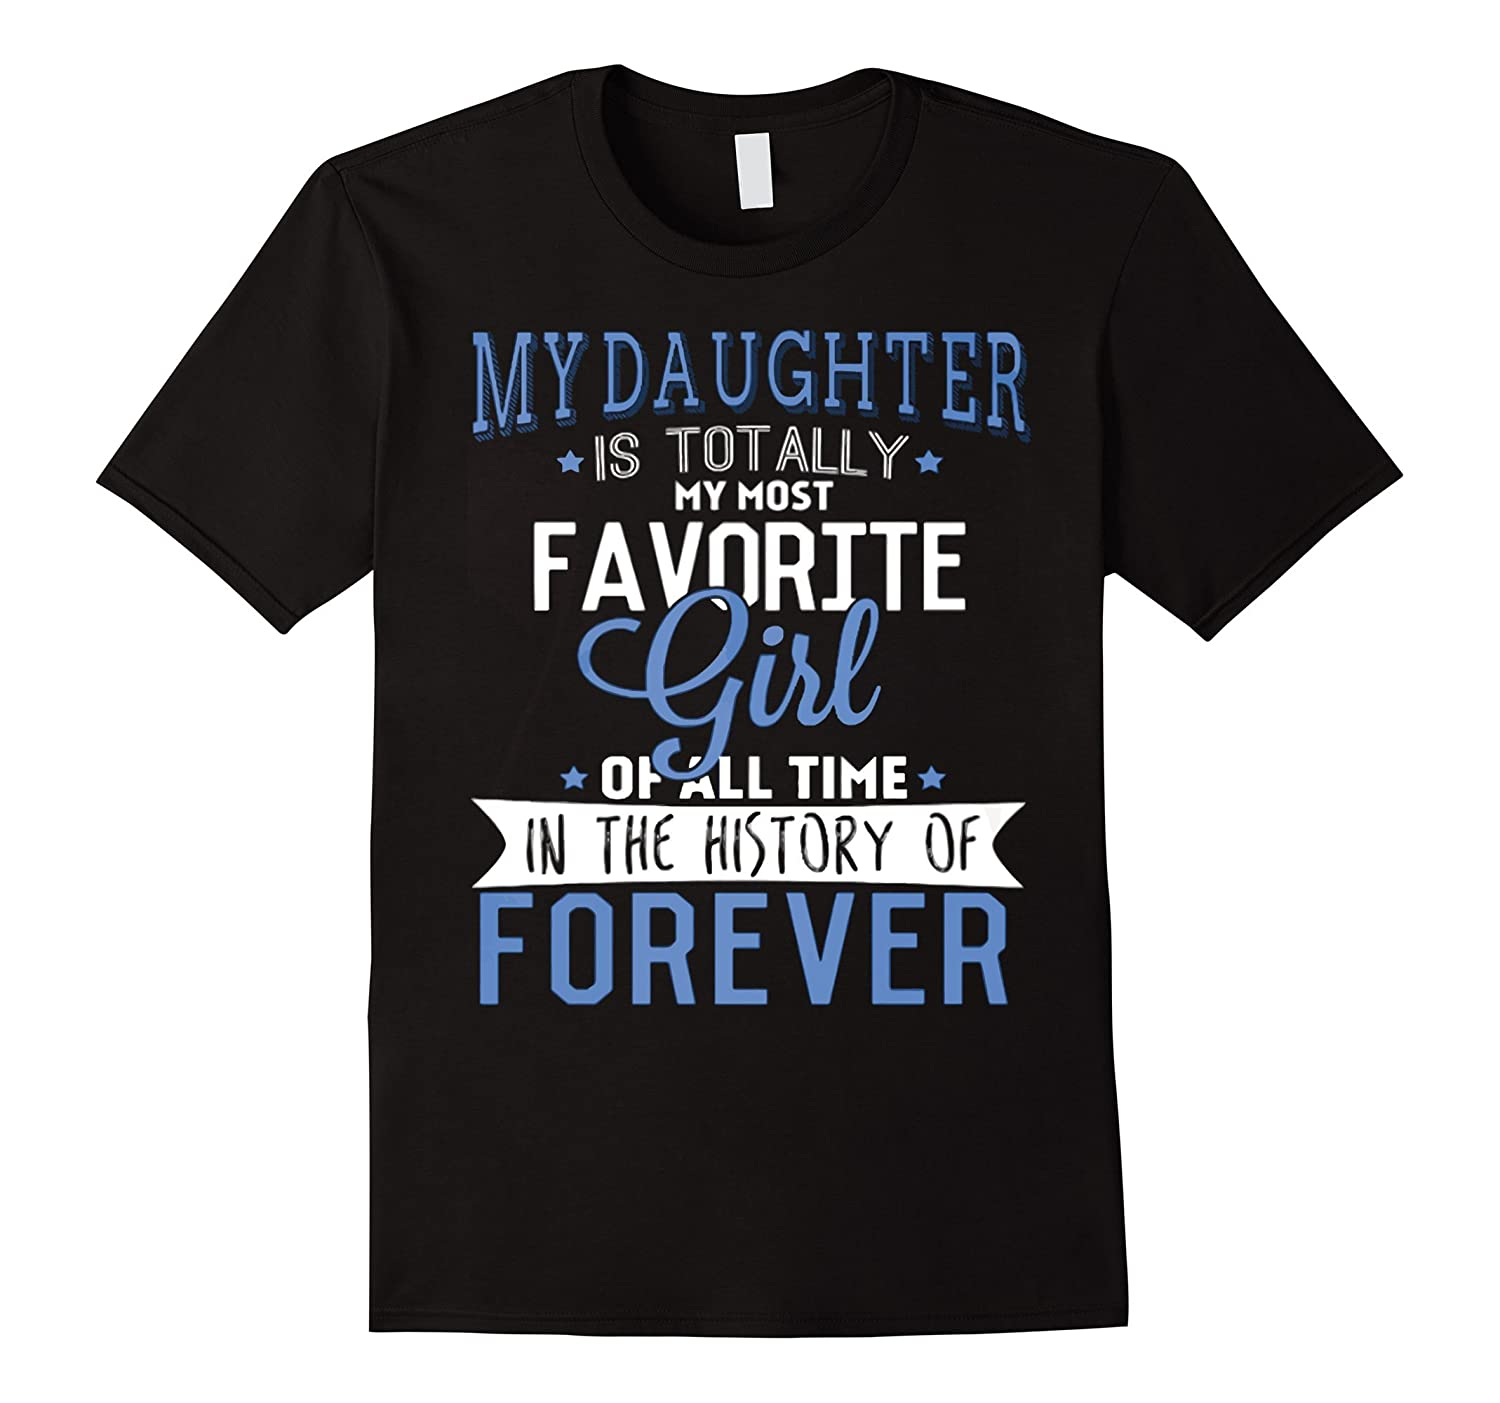 6aa4ce0cf FATHER DAY GIFT: MY DAUGHTER IS MY FAVORITE GIRL dad t shirt-CL ...